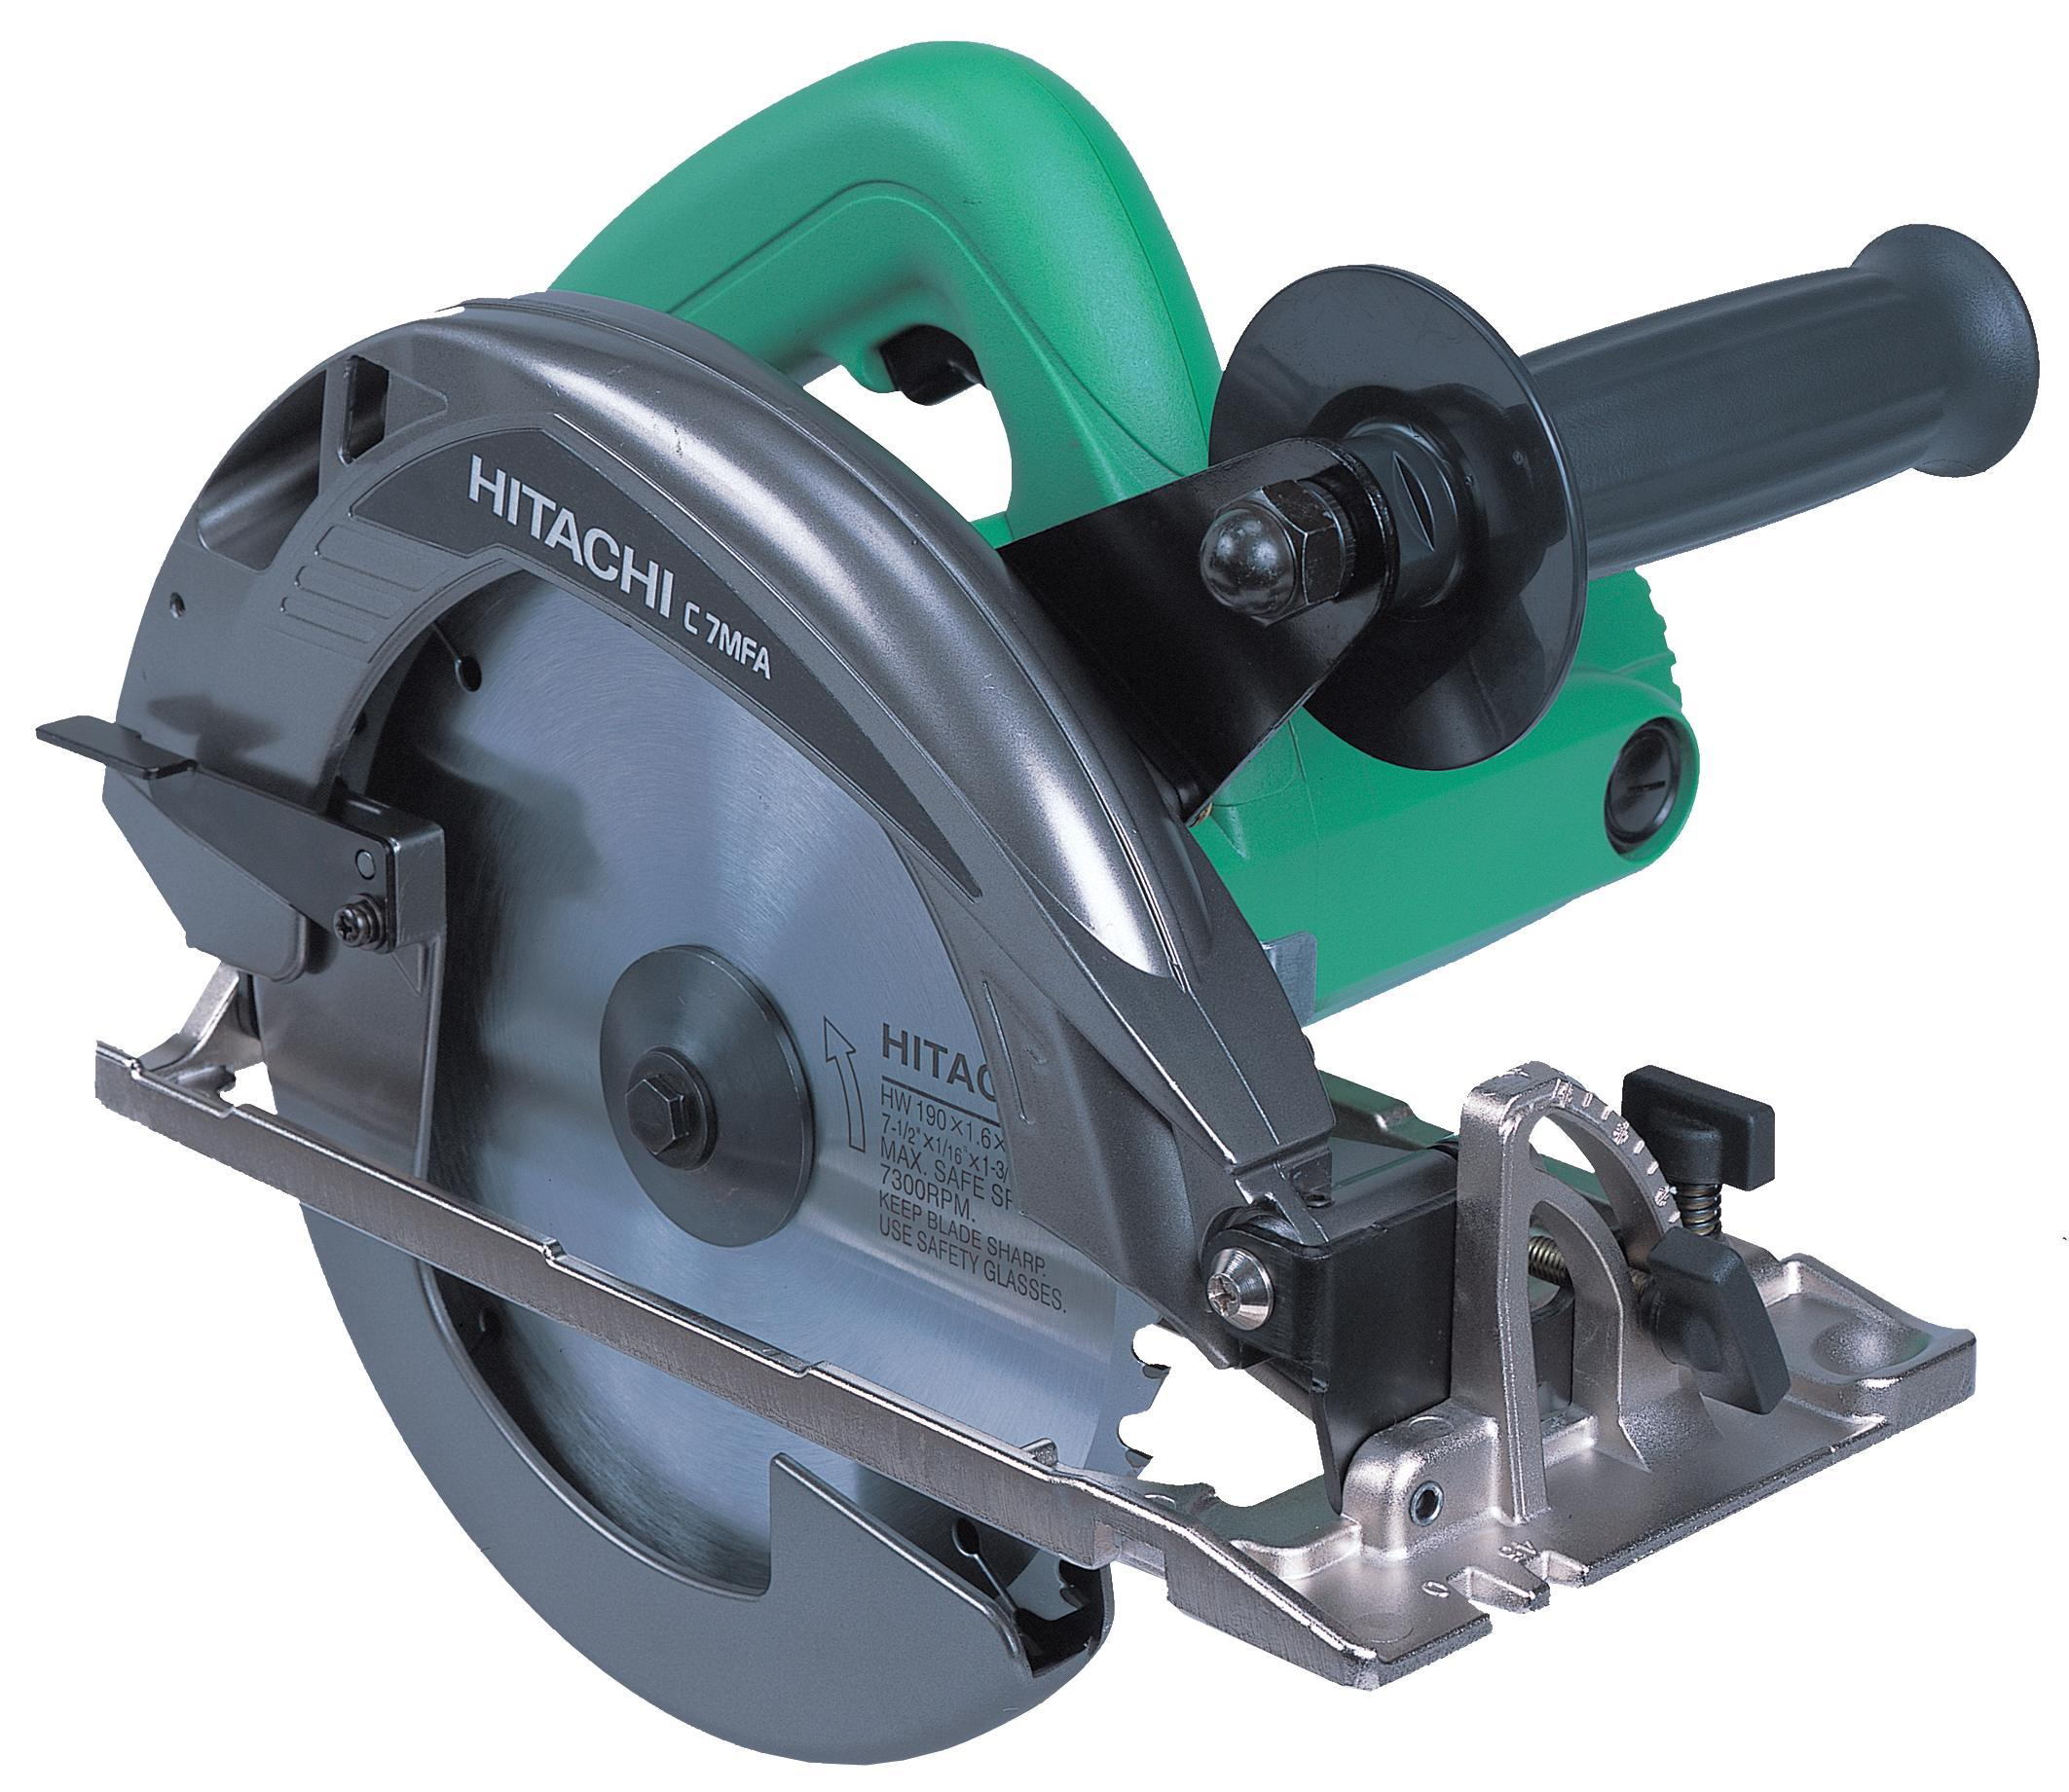 Hitachi 190mm Circular Saw